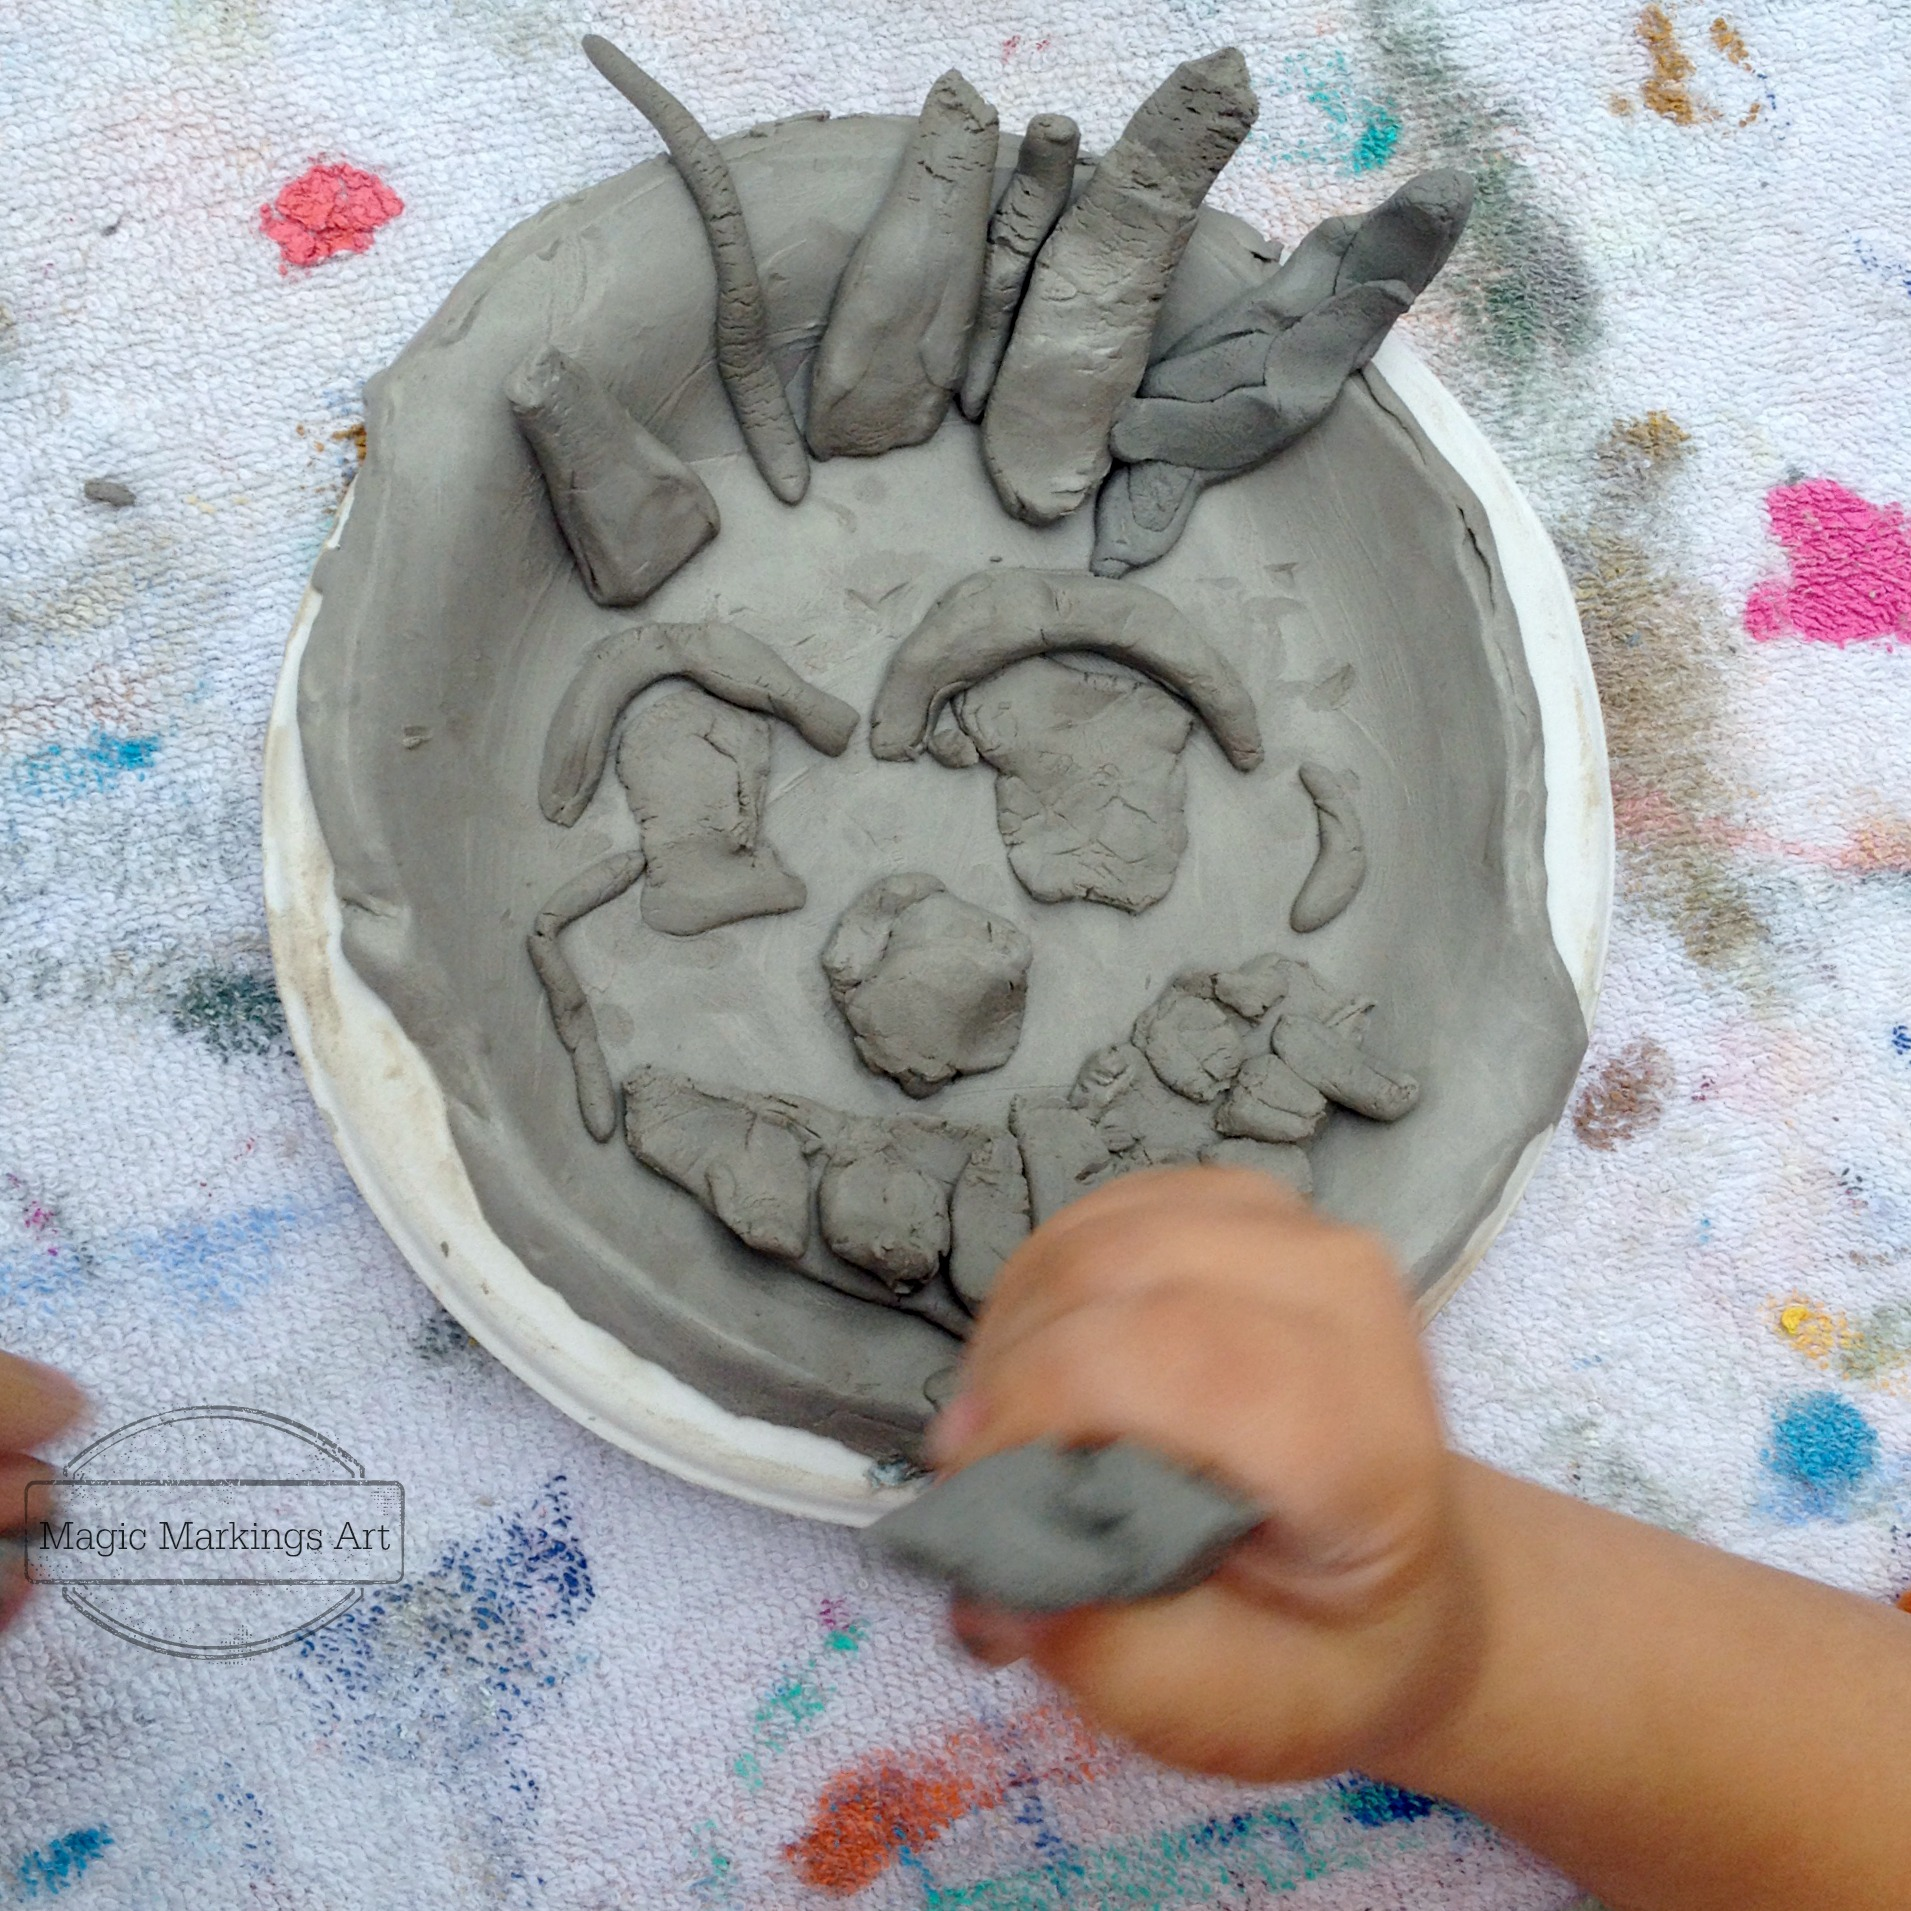 magicmarkingsart preschool art clay face